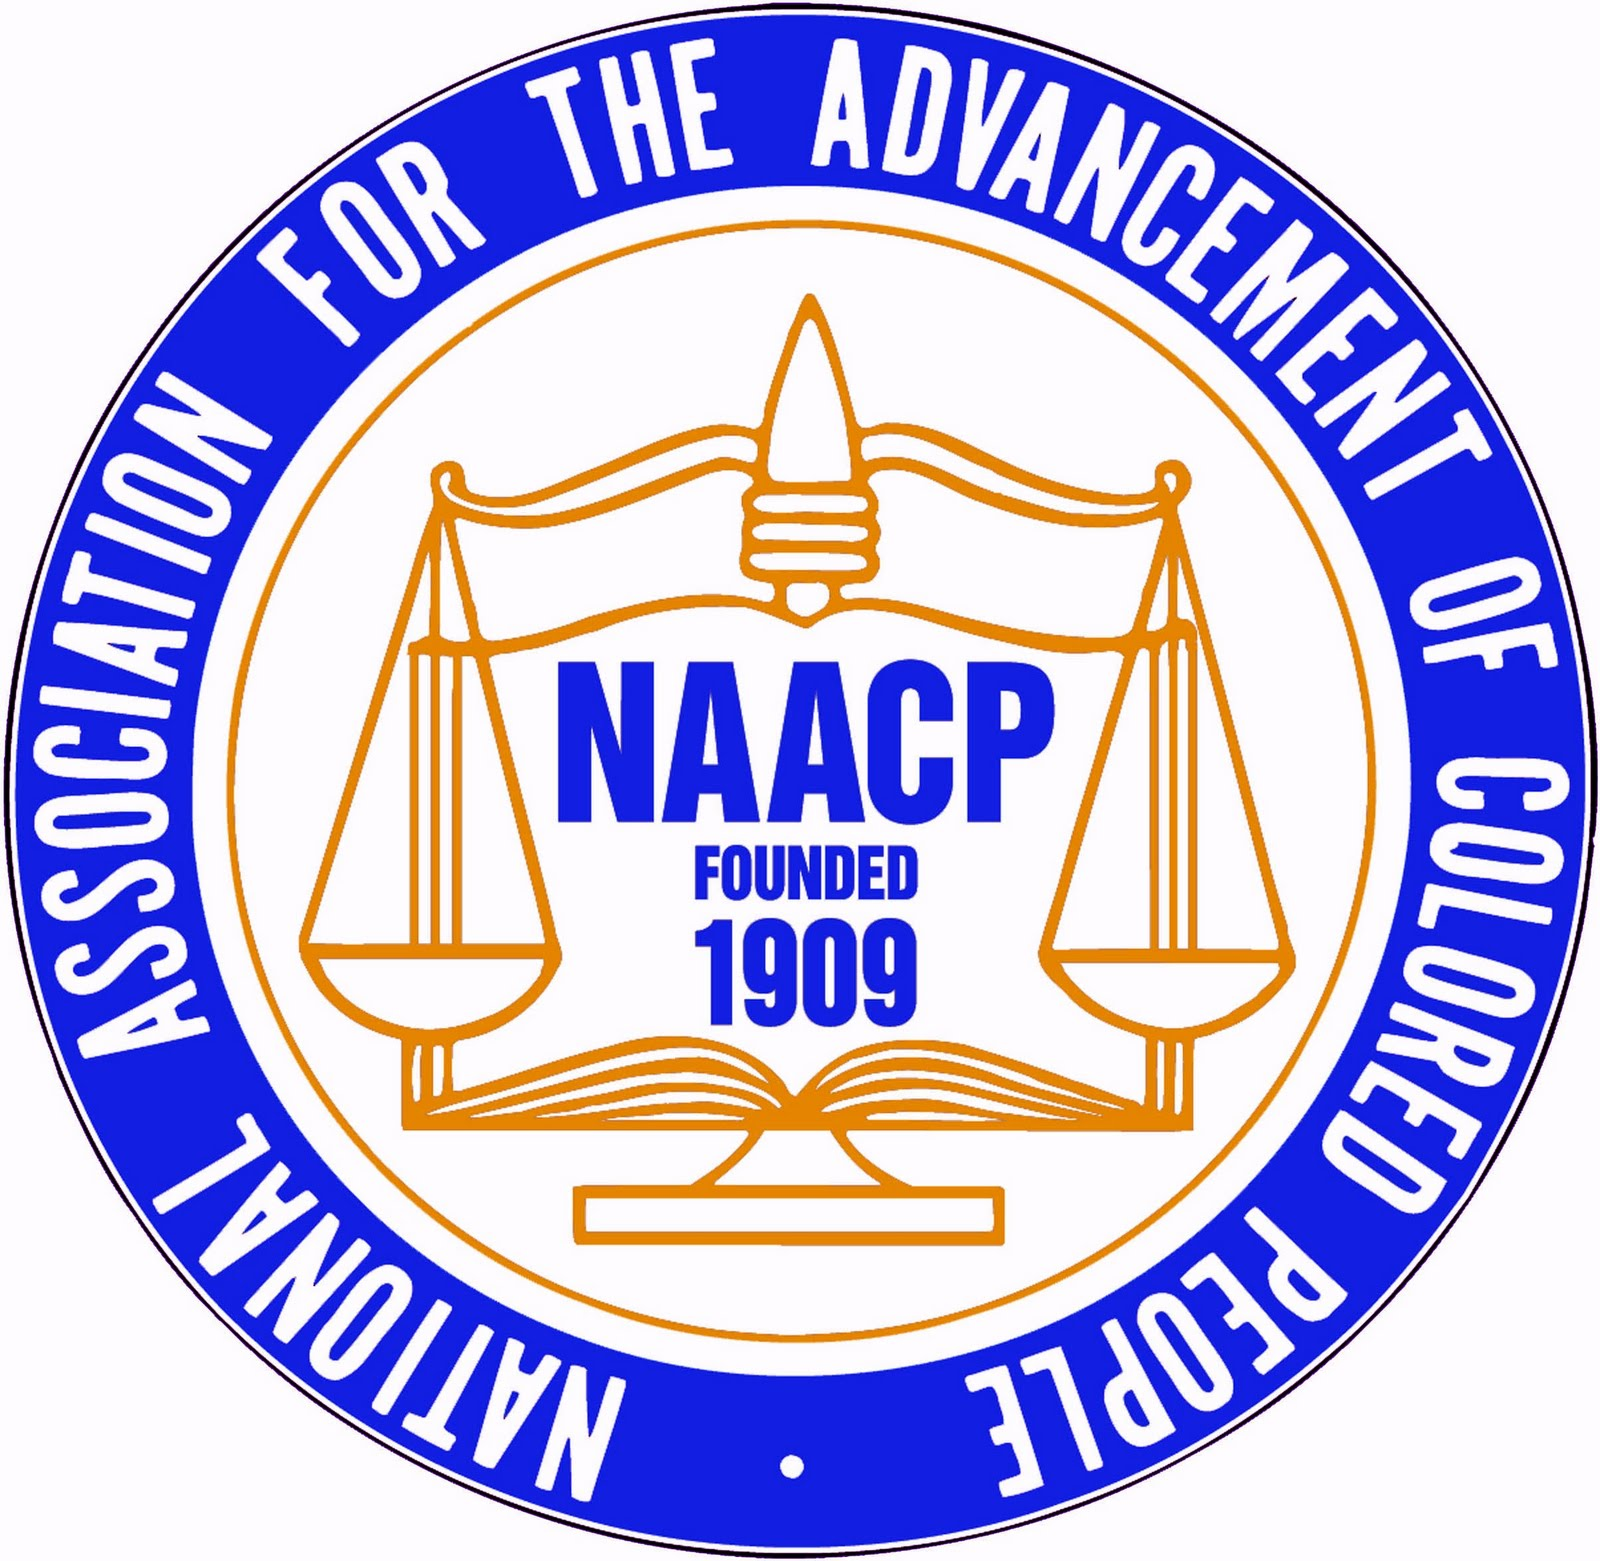 what was the purpose of the naacp